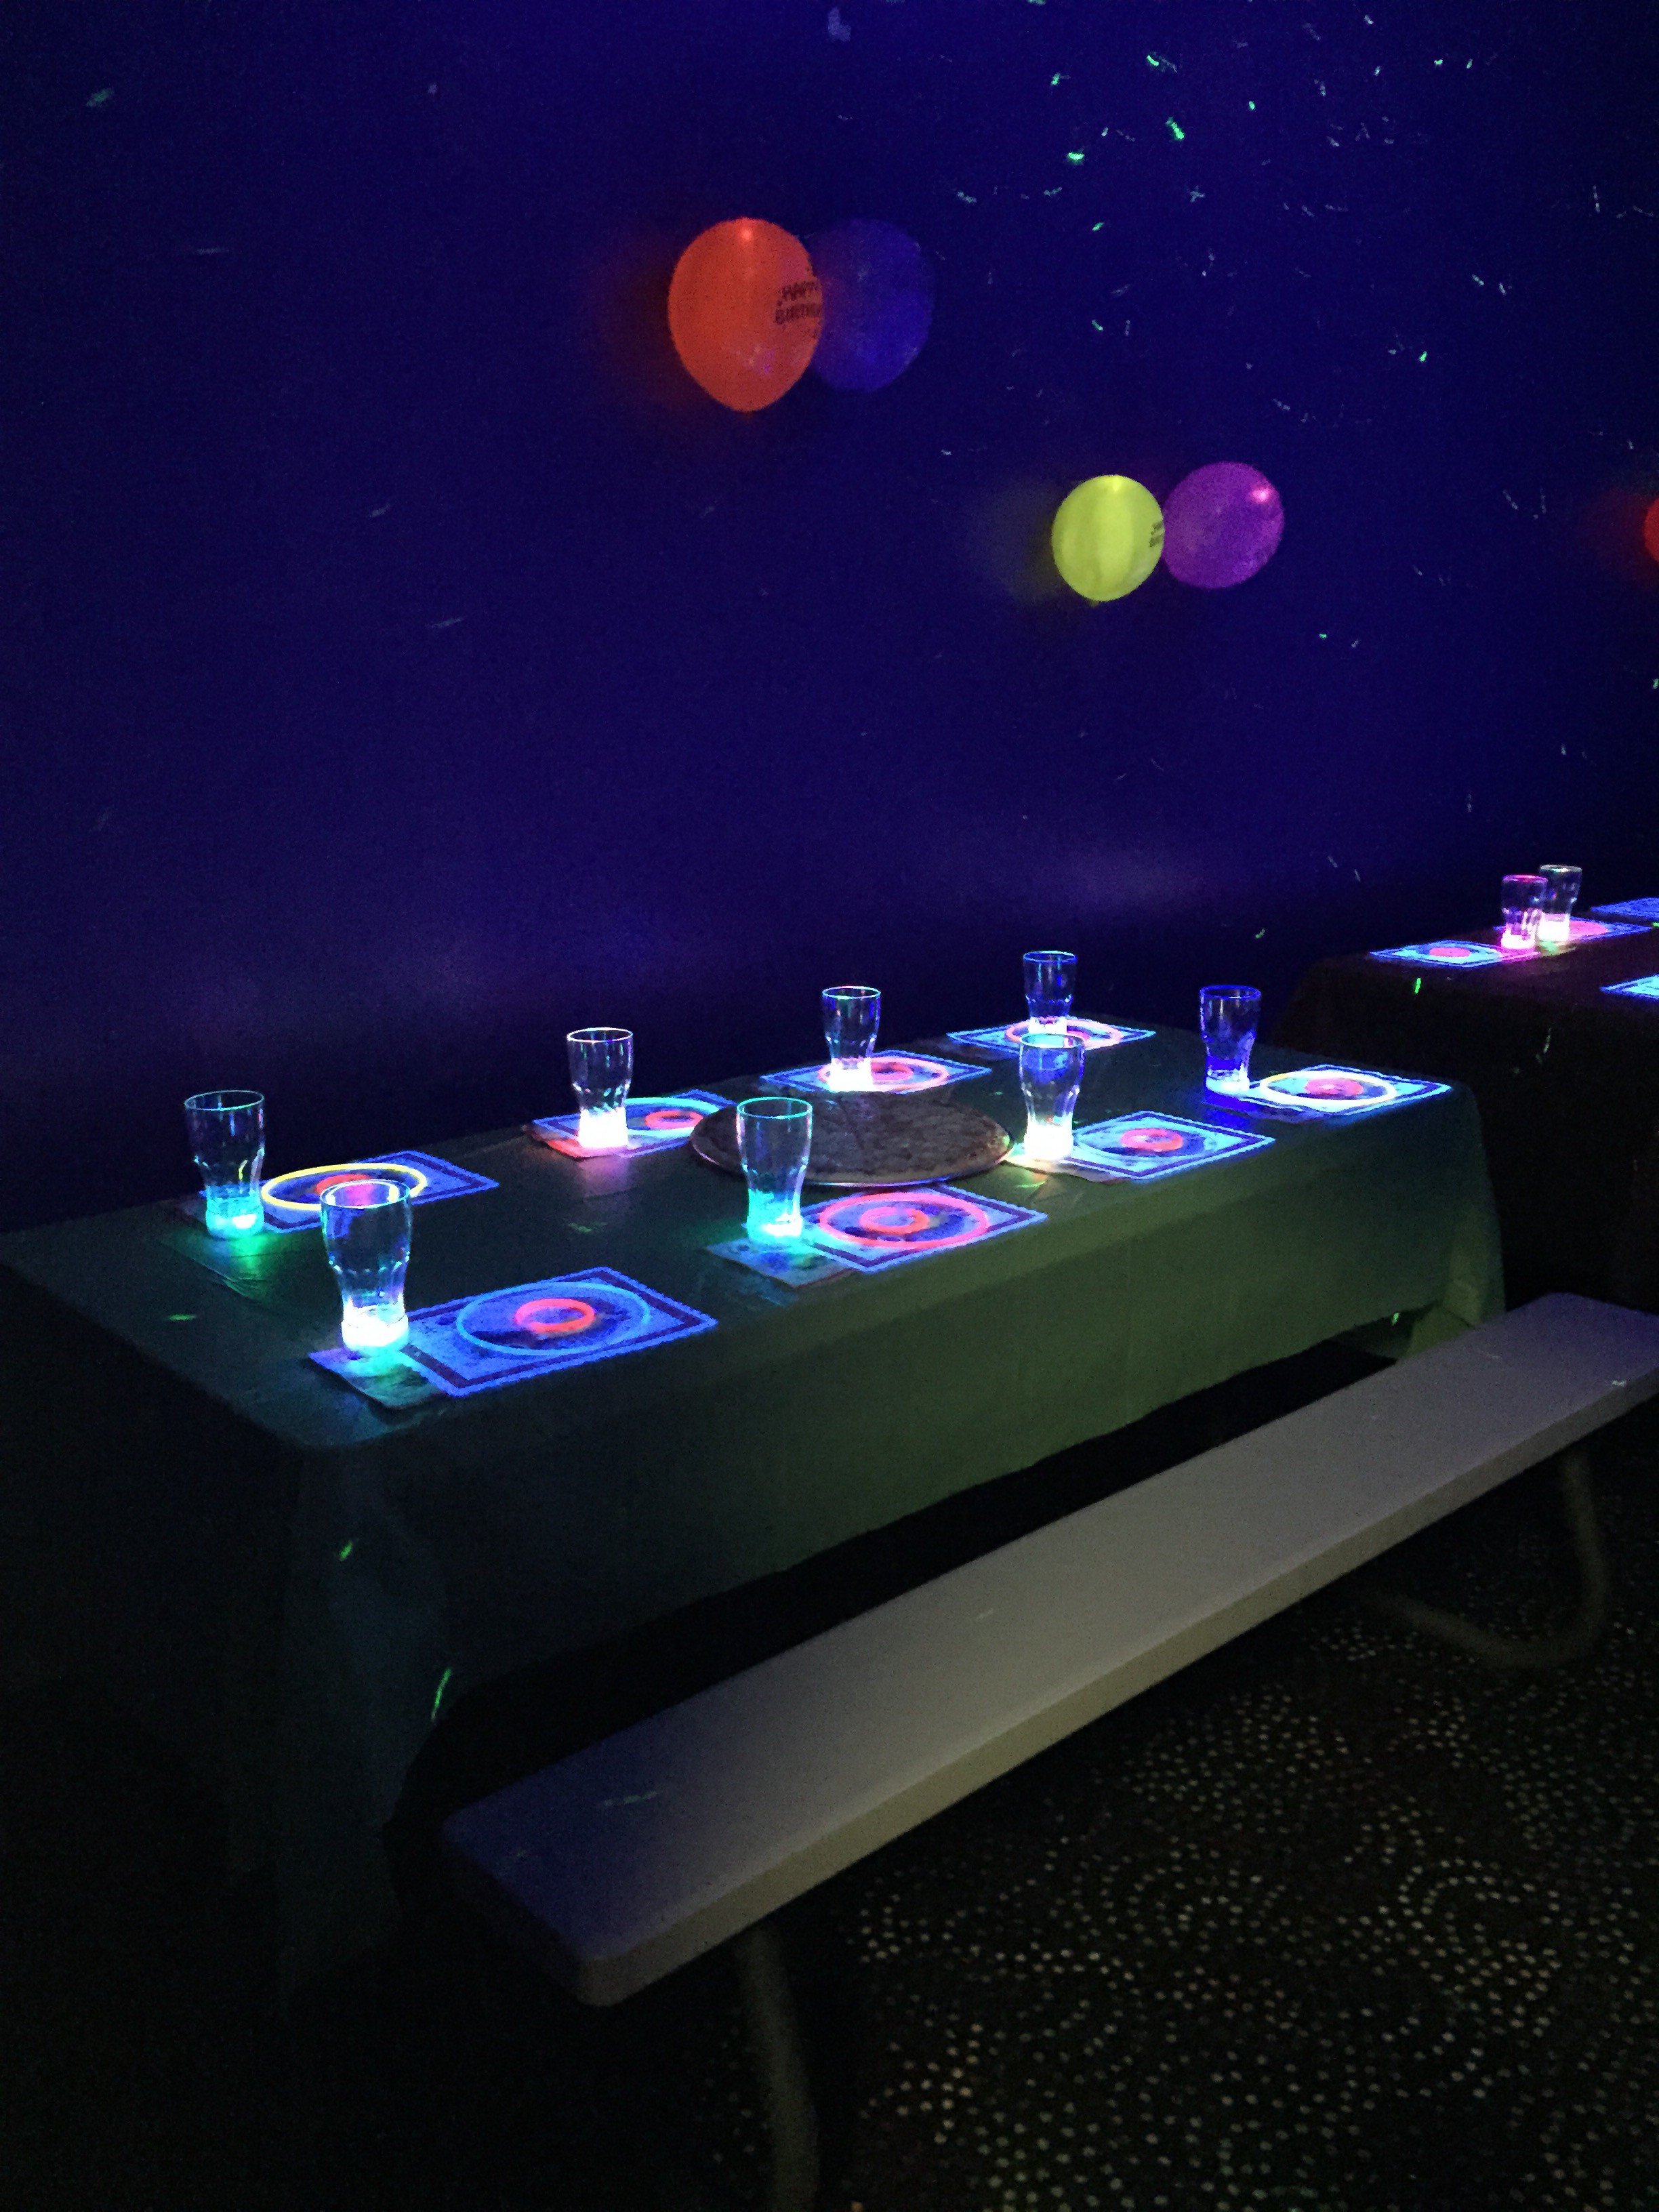 Funny Glow Party Uncle Shirt Cool Birthday Gift The Lighting Works Best If You And Your Guests Wear White Or Neon Colors